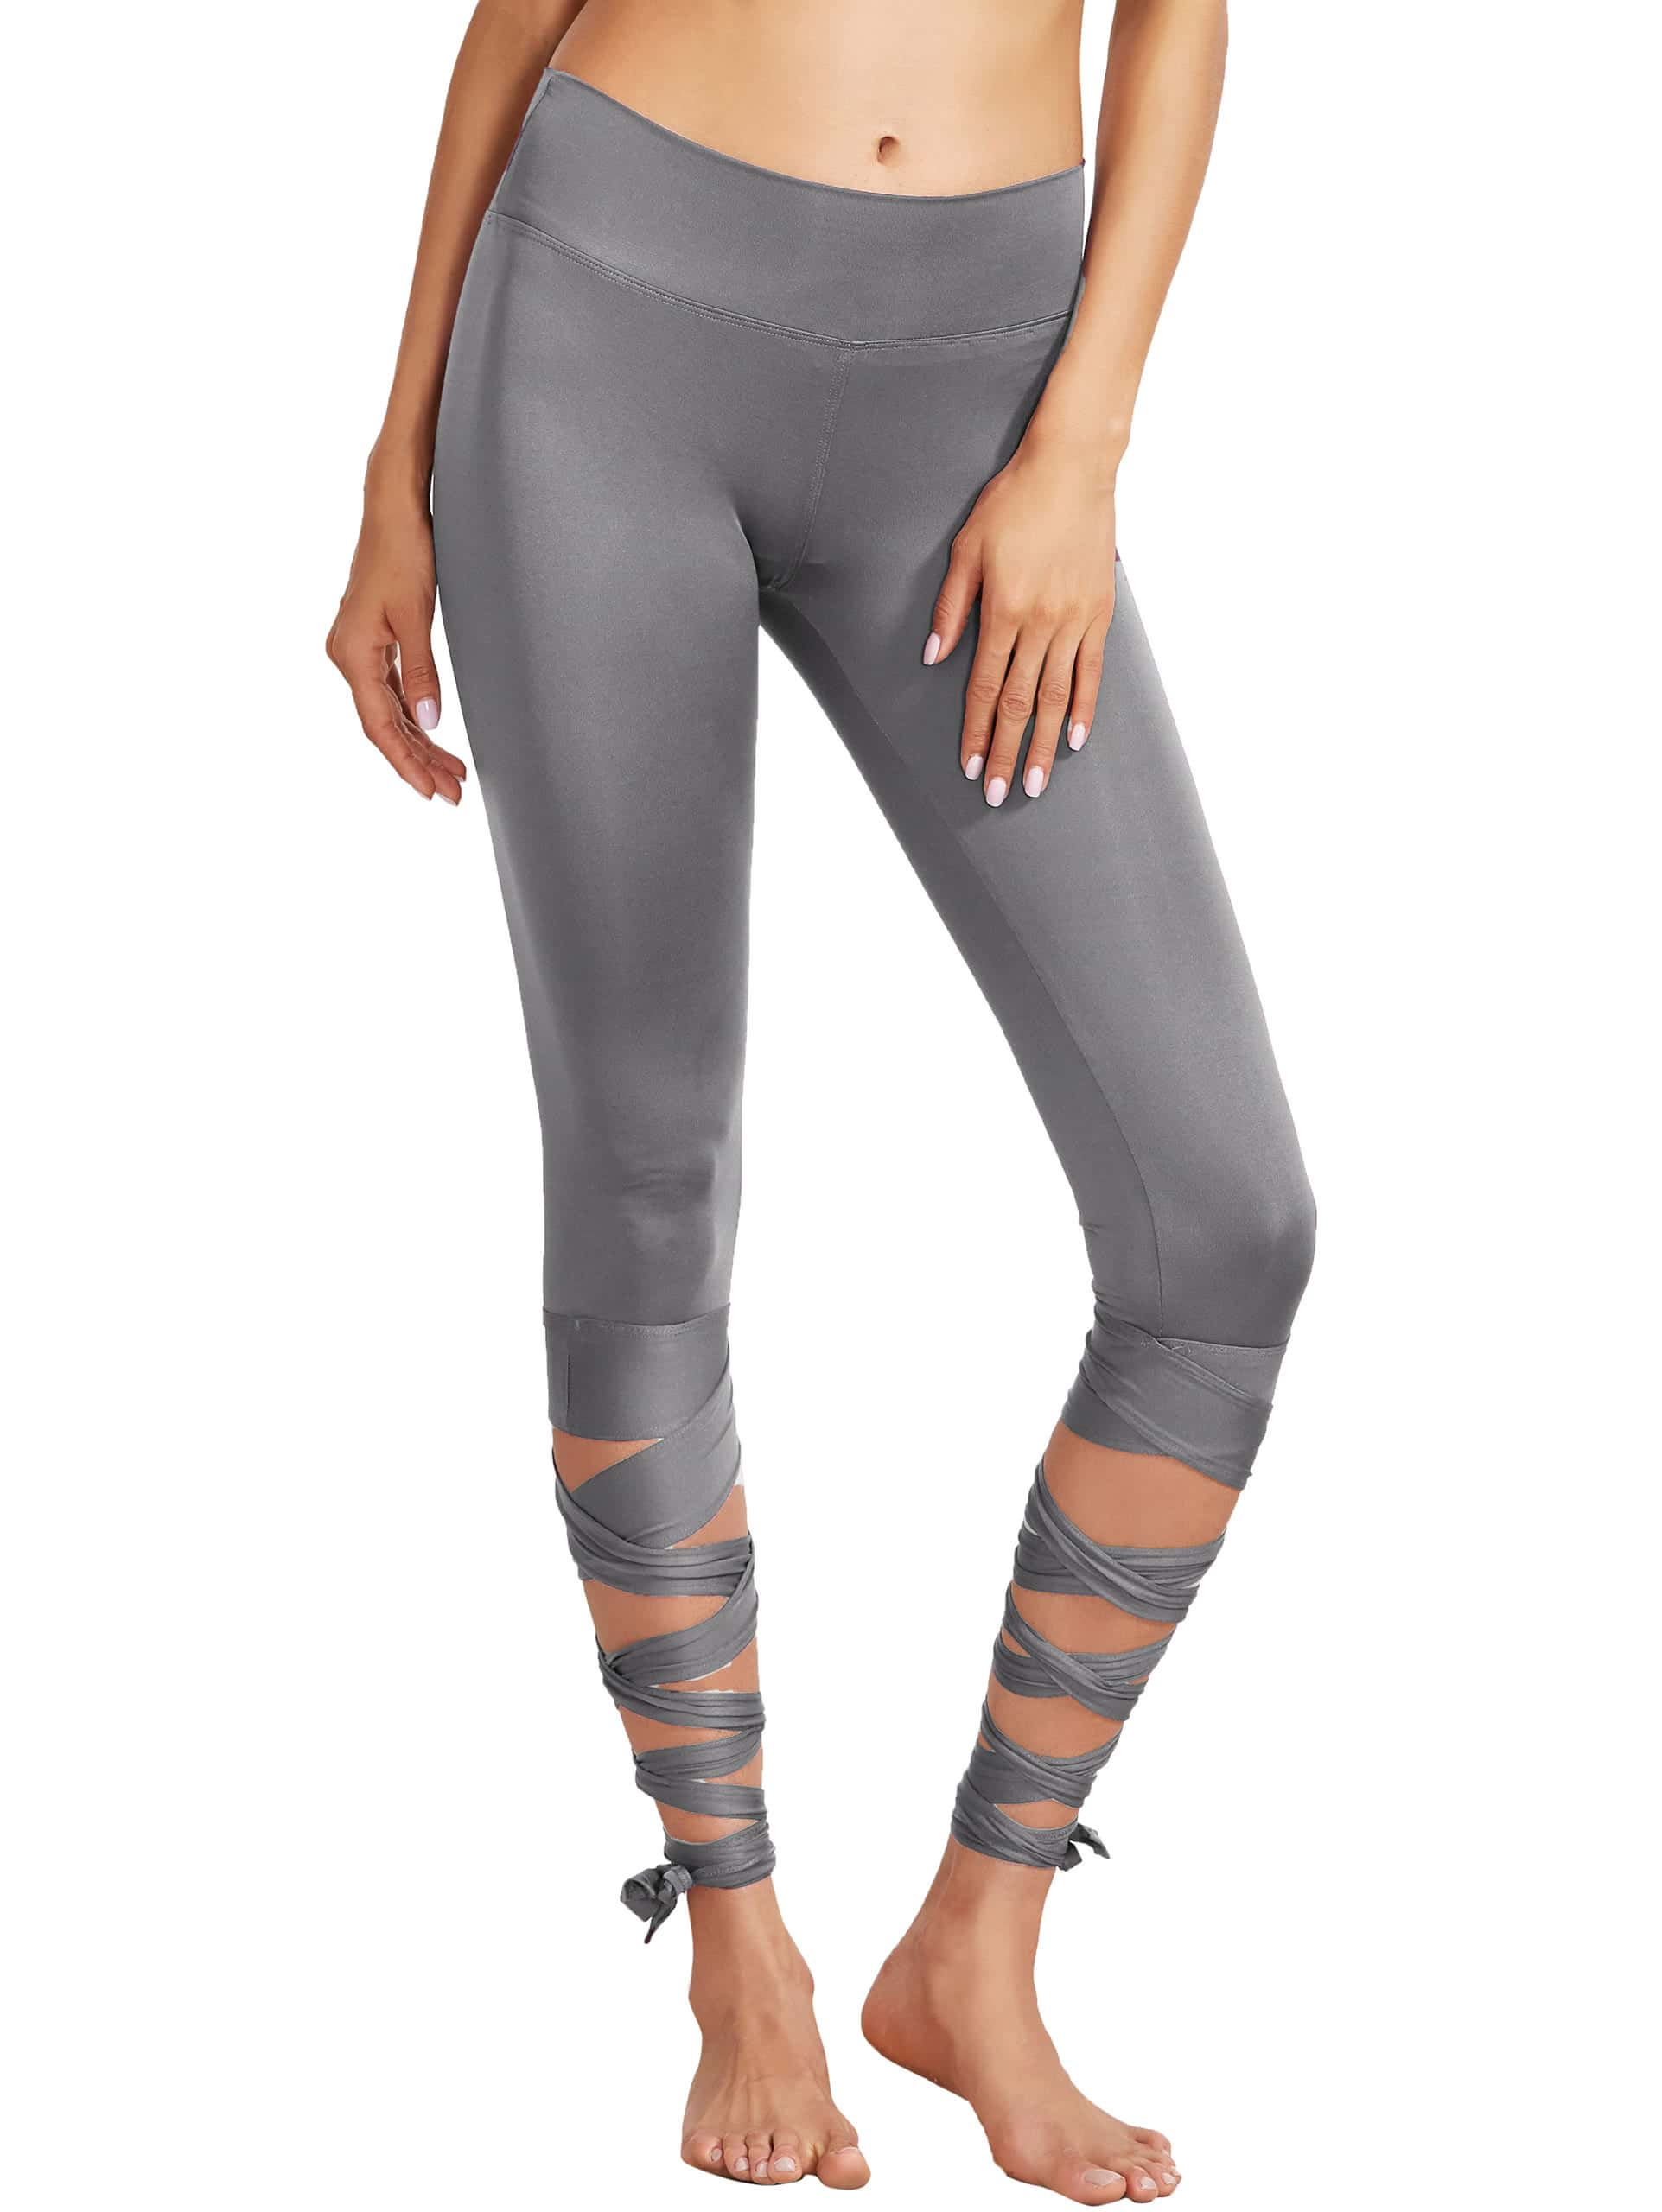 Ultra Leggings w/ Wide Waistband by HUE at topinsurances.ga Read HUE Ultra Leggings w/ Wide Waistband product reviews, or select the size, width, and color of your choice.5/5().